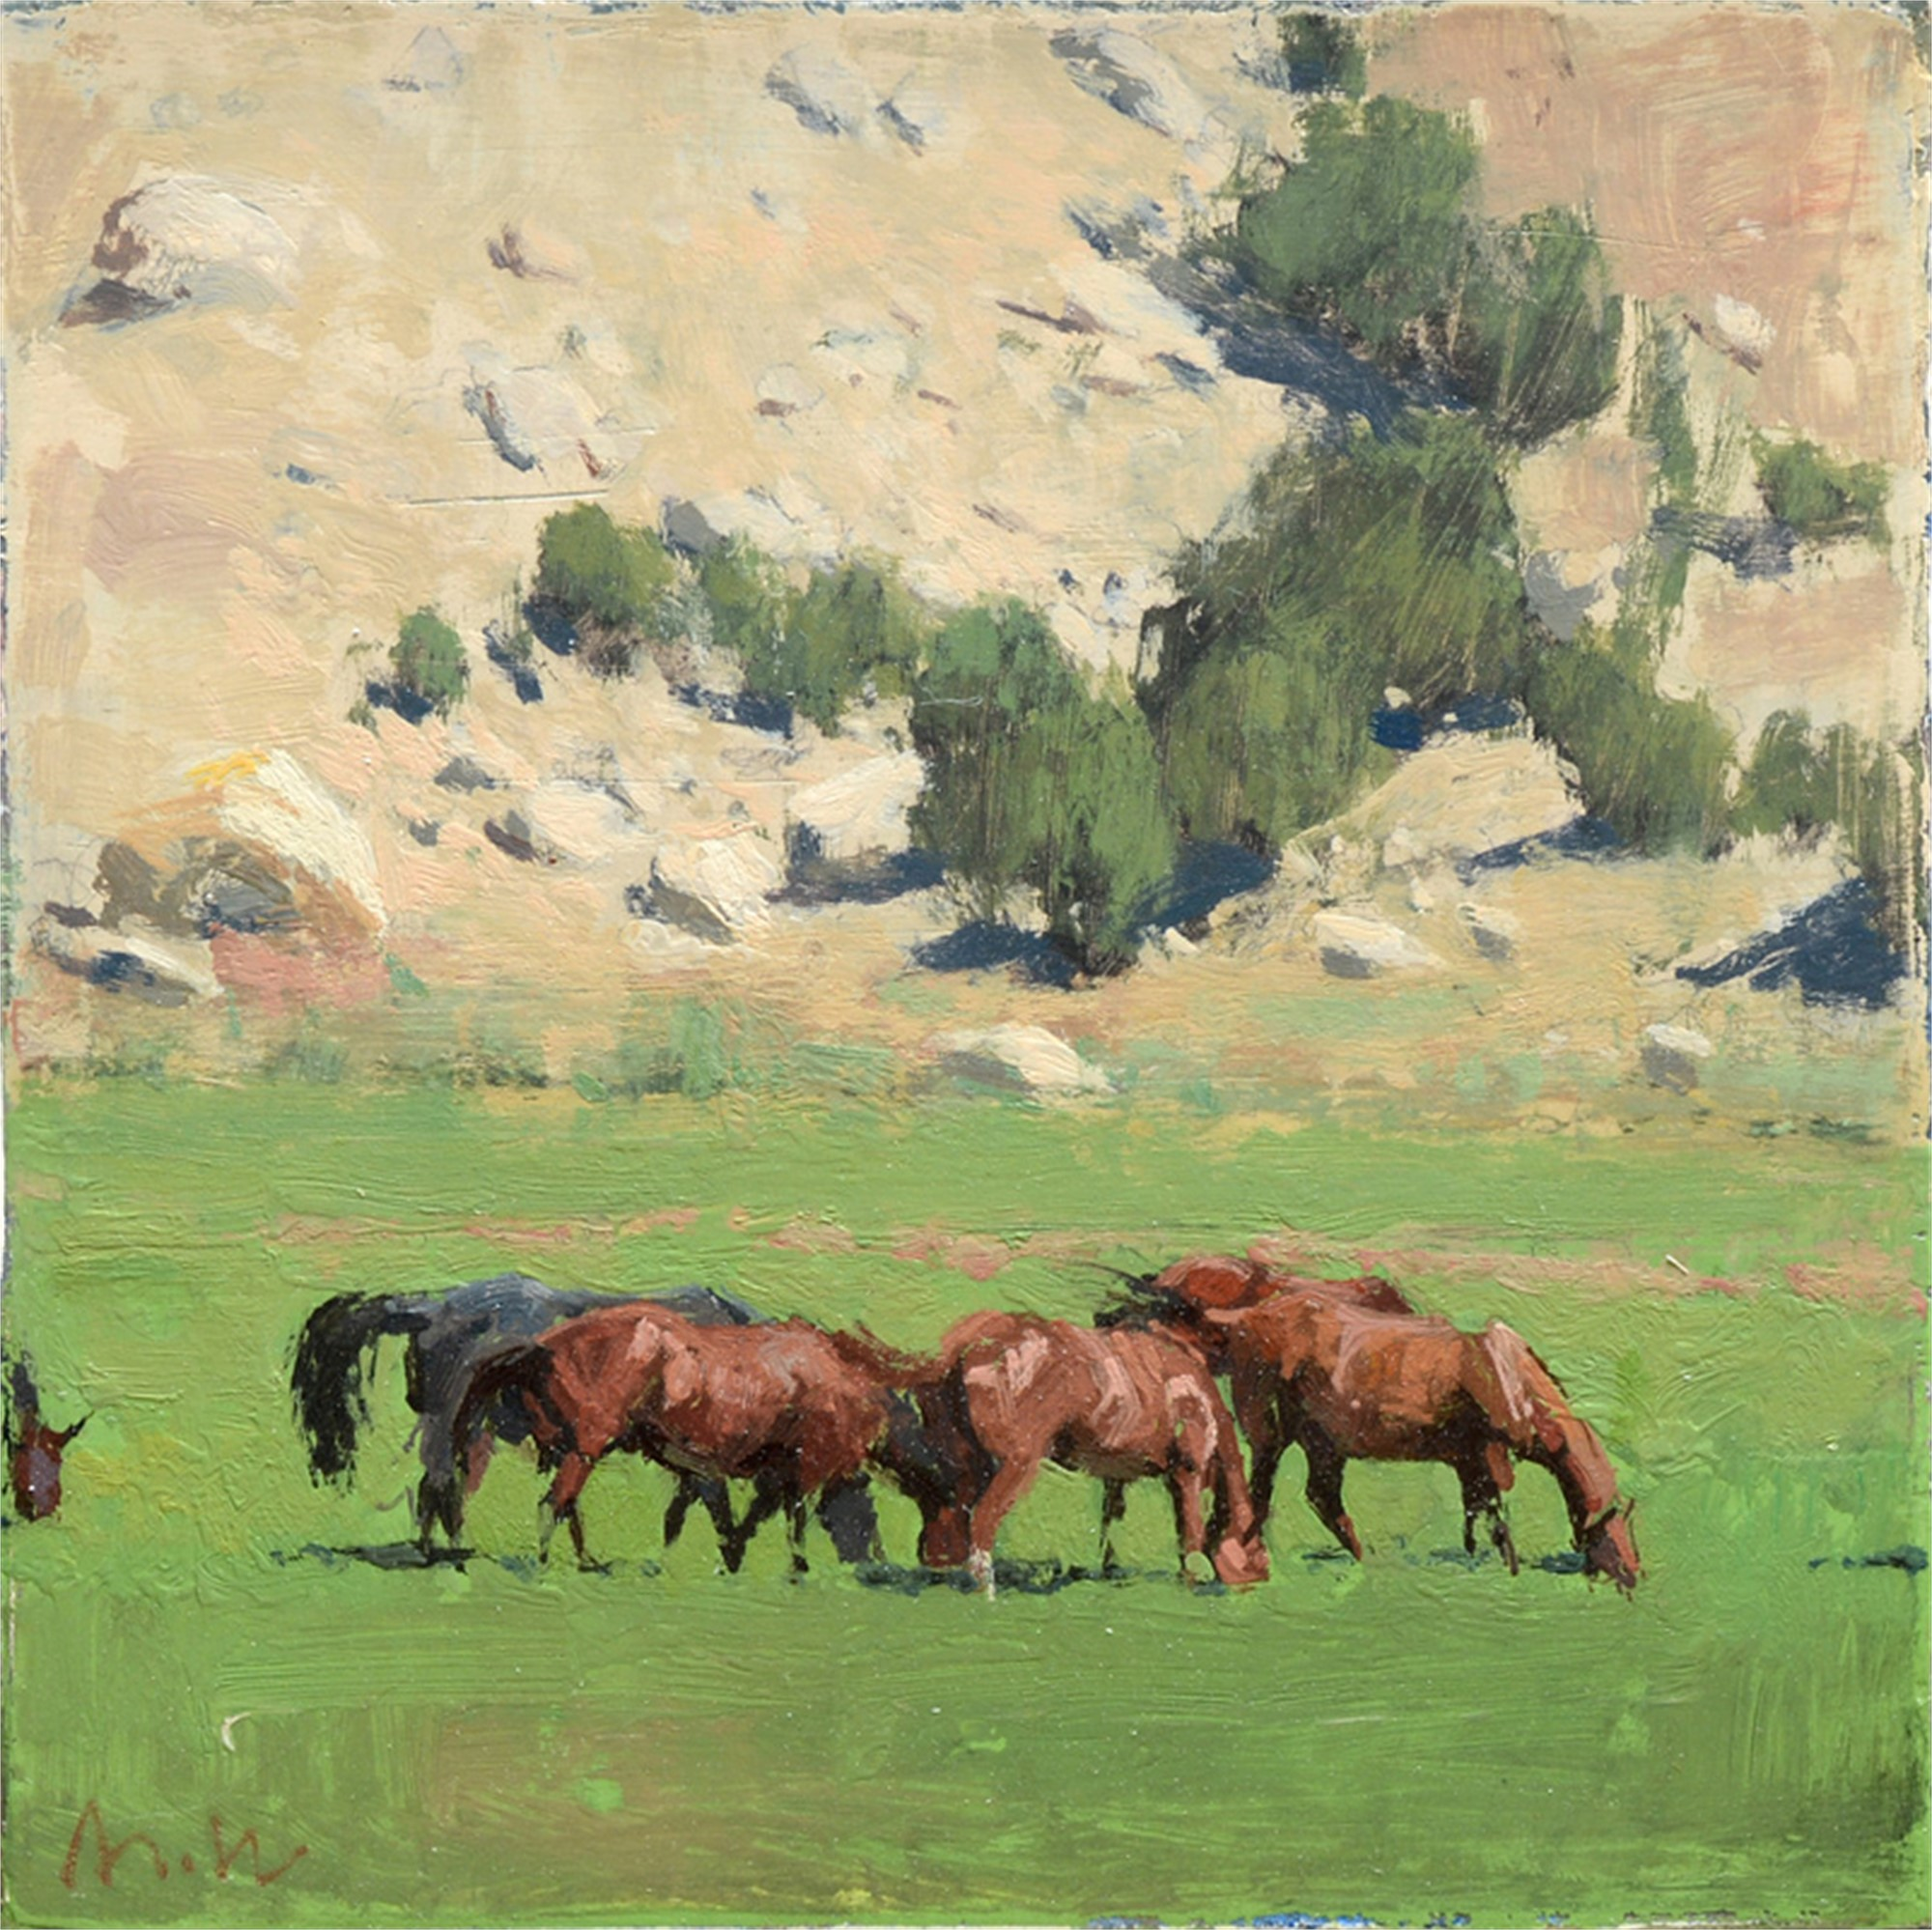 Canyon Horses II by Michael Workman